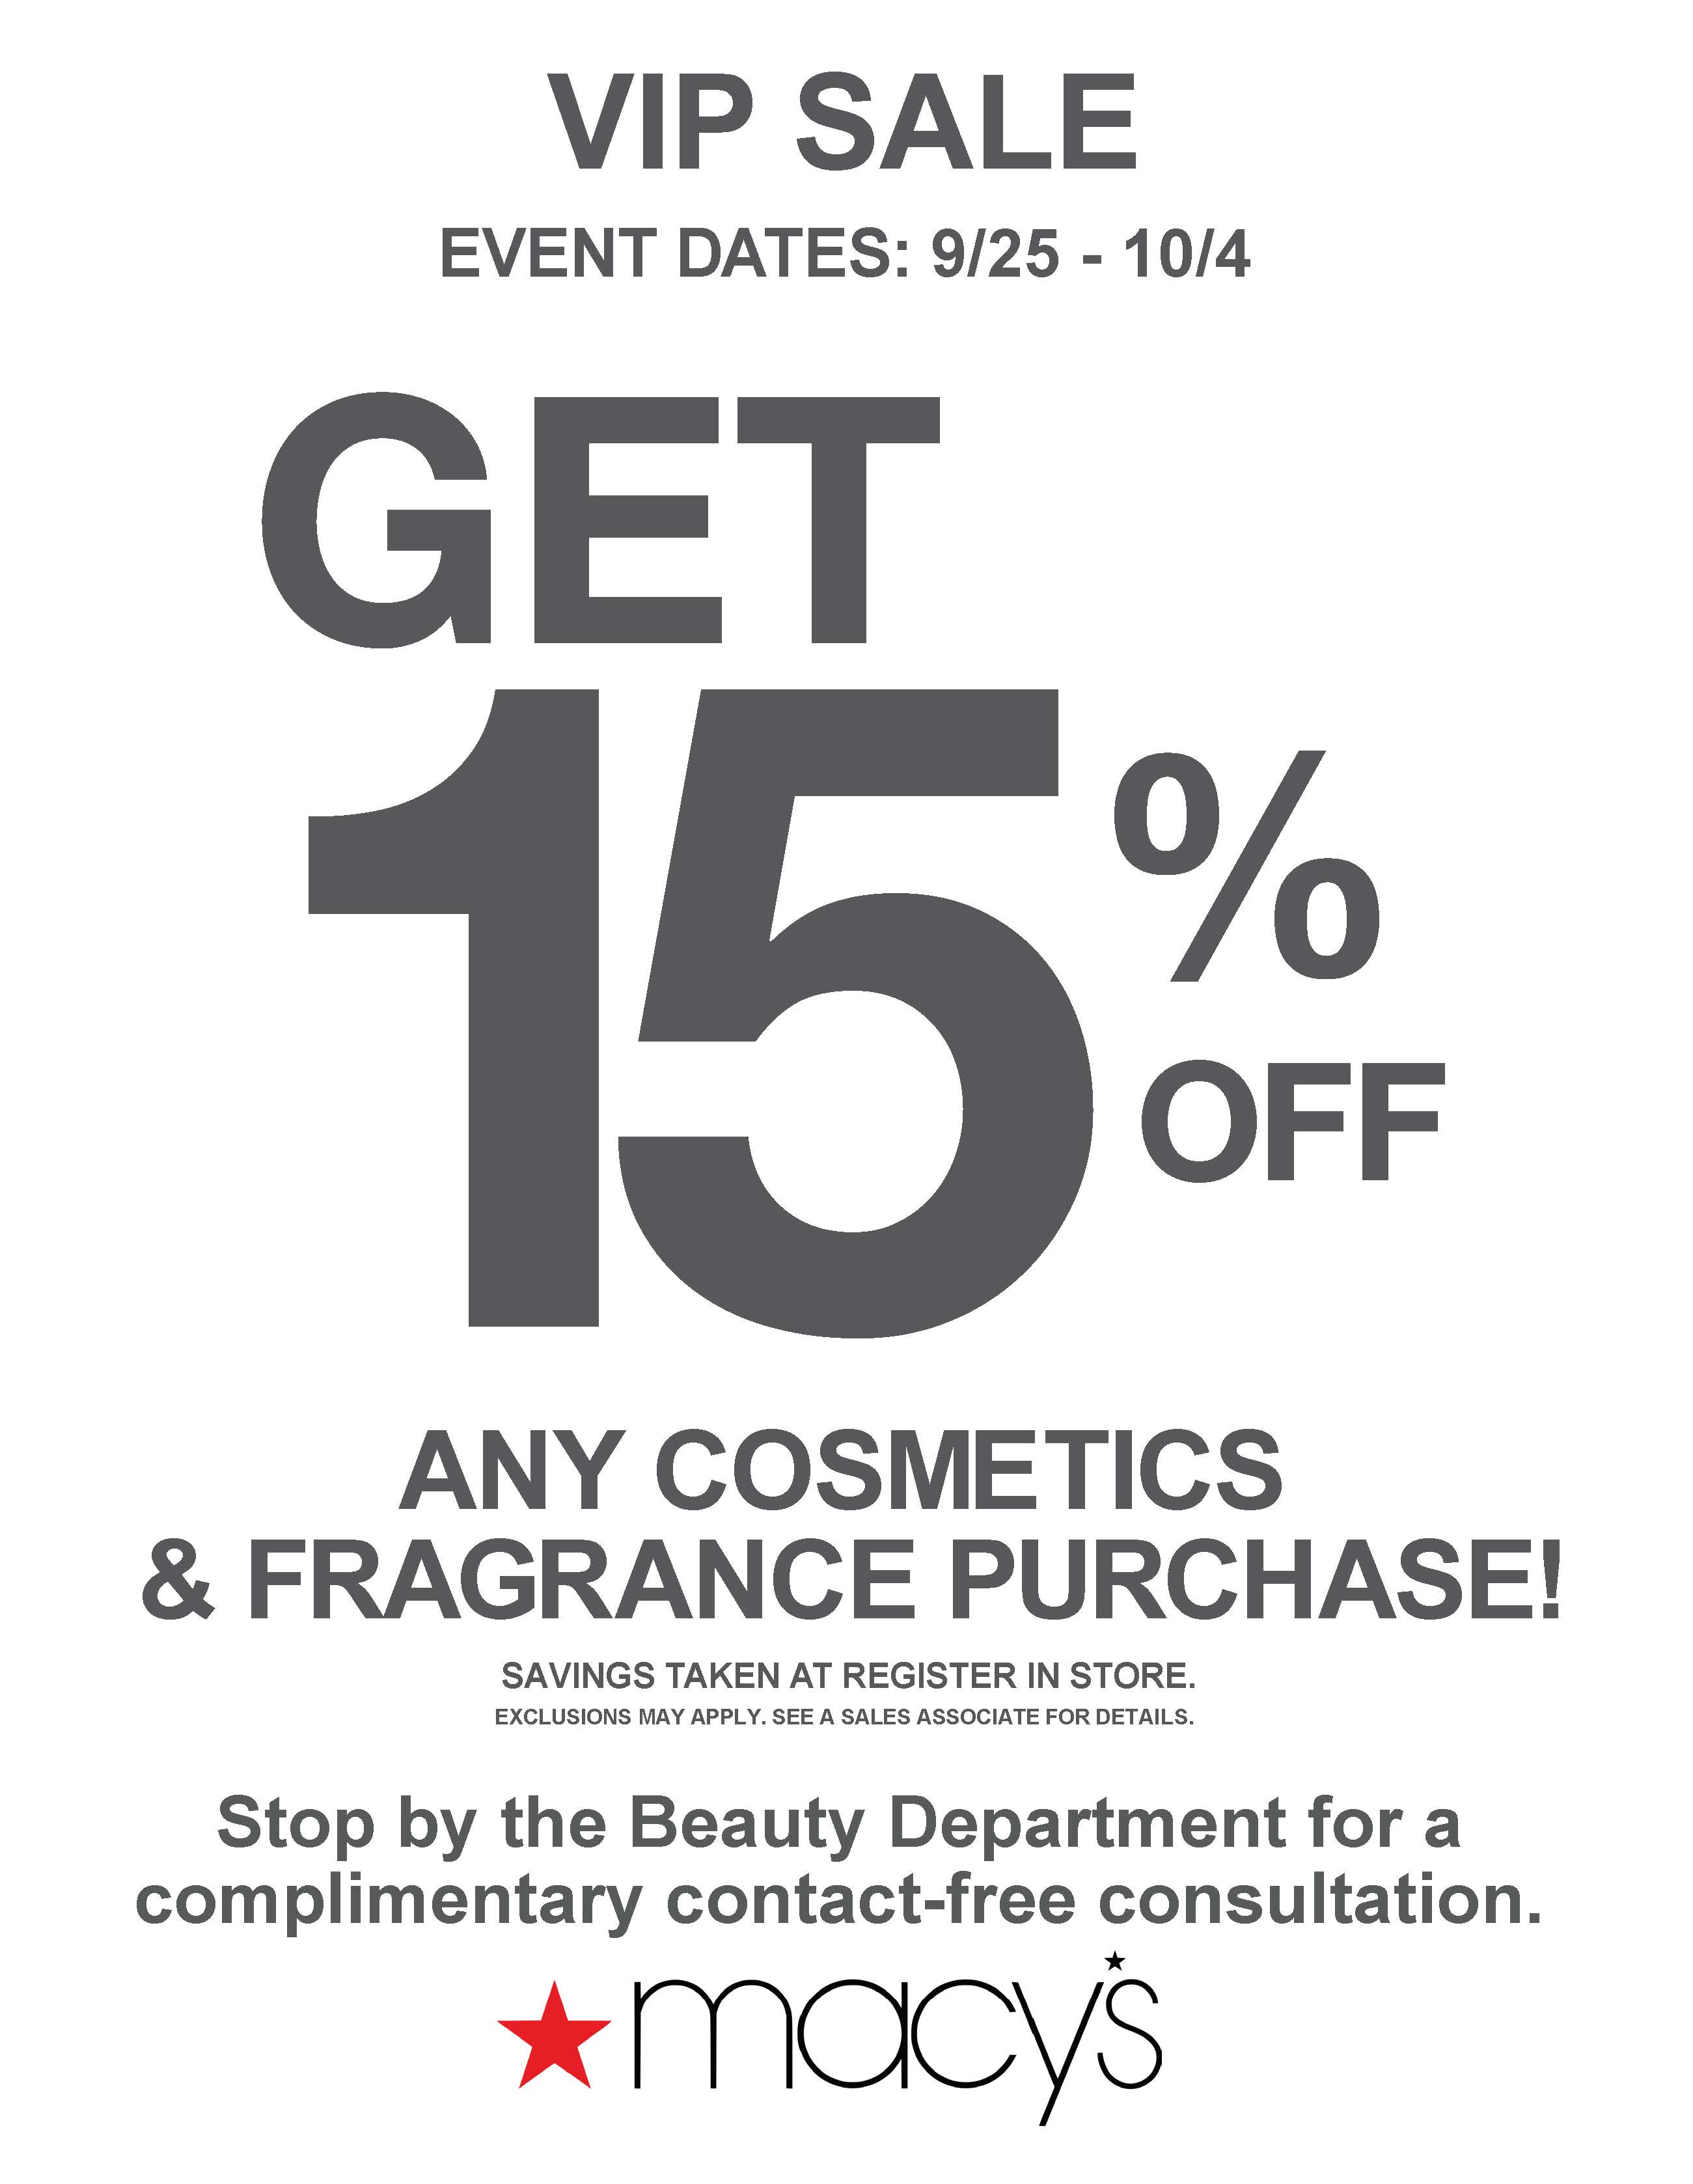 Cosmetics & Fragrance Sale at Macy's!